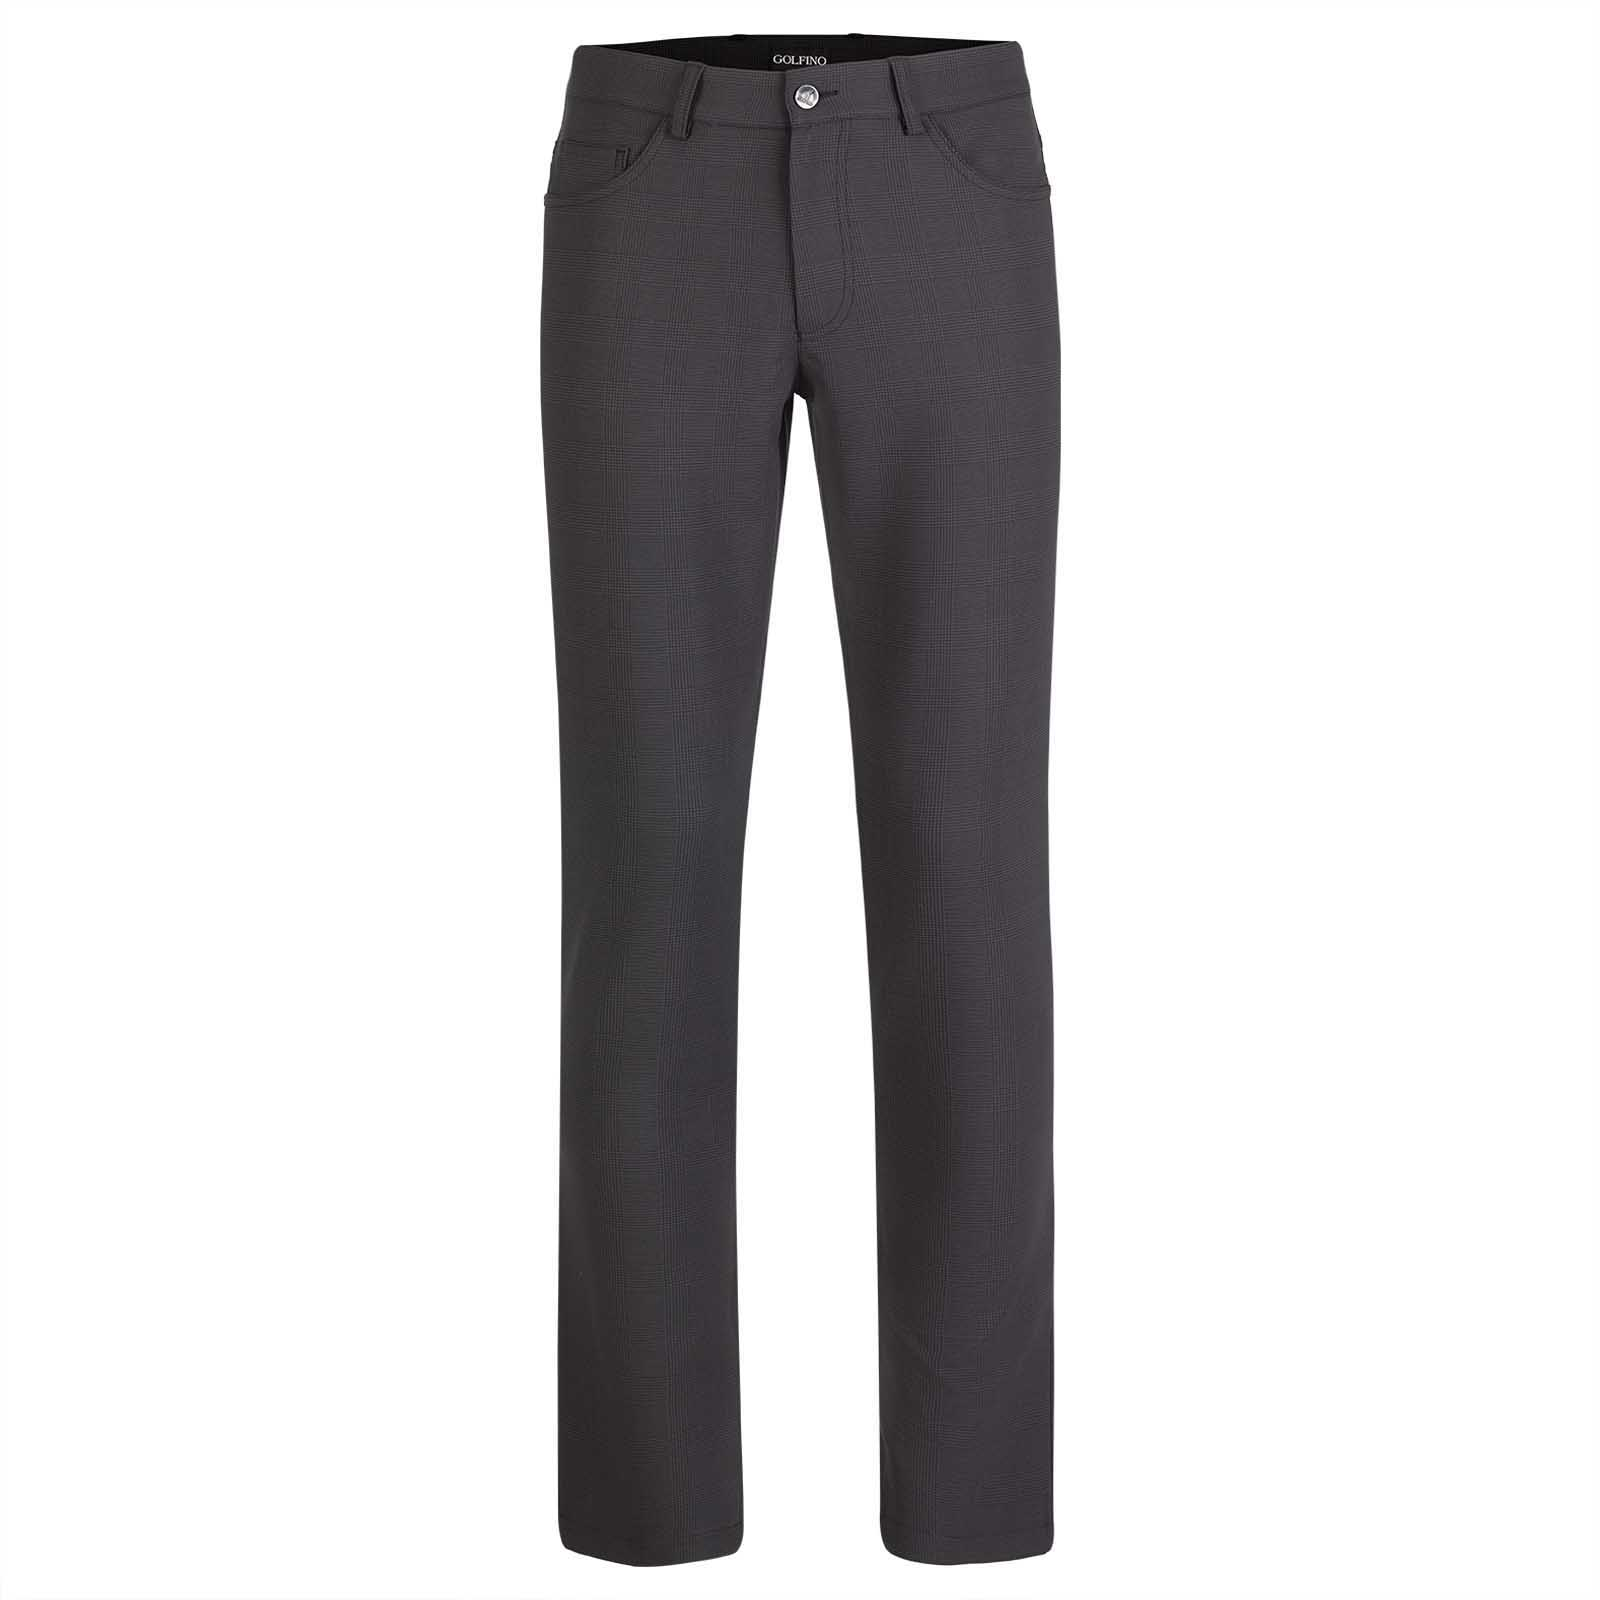 Men's stretch function golf trousers in classic checked pattern